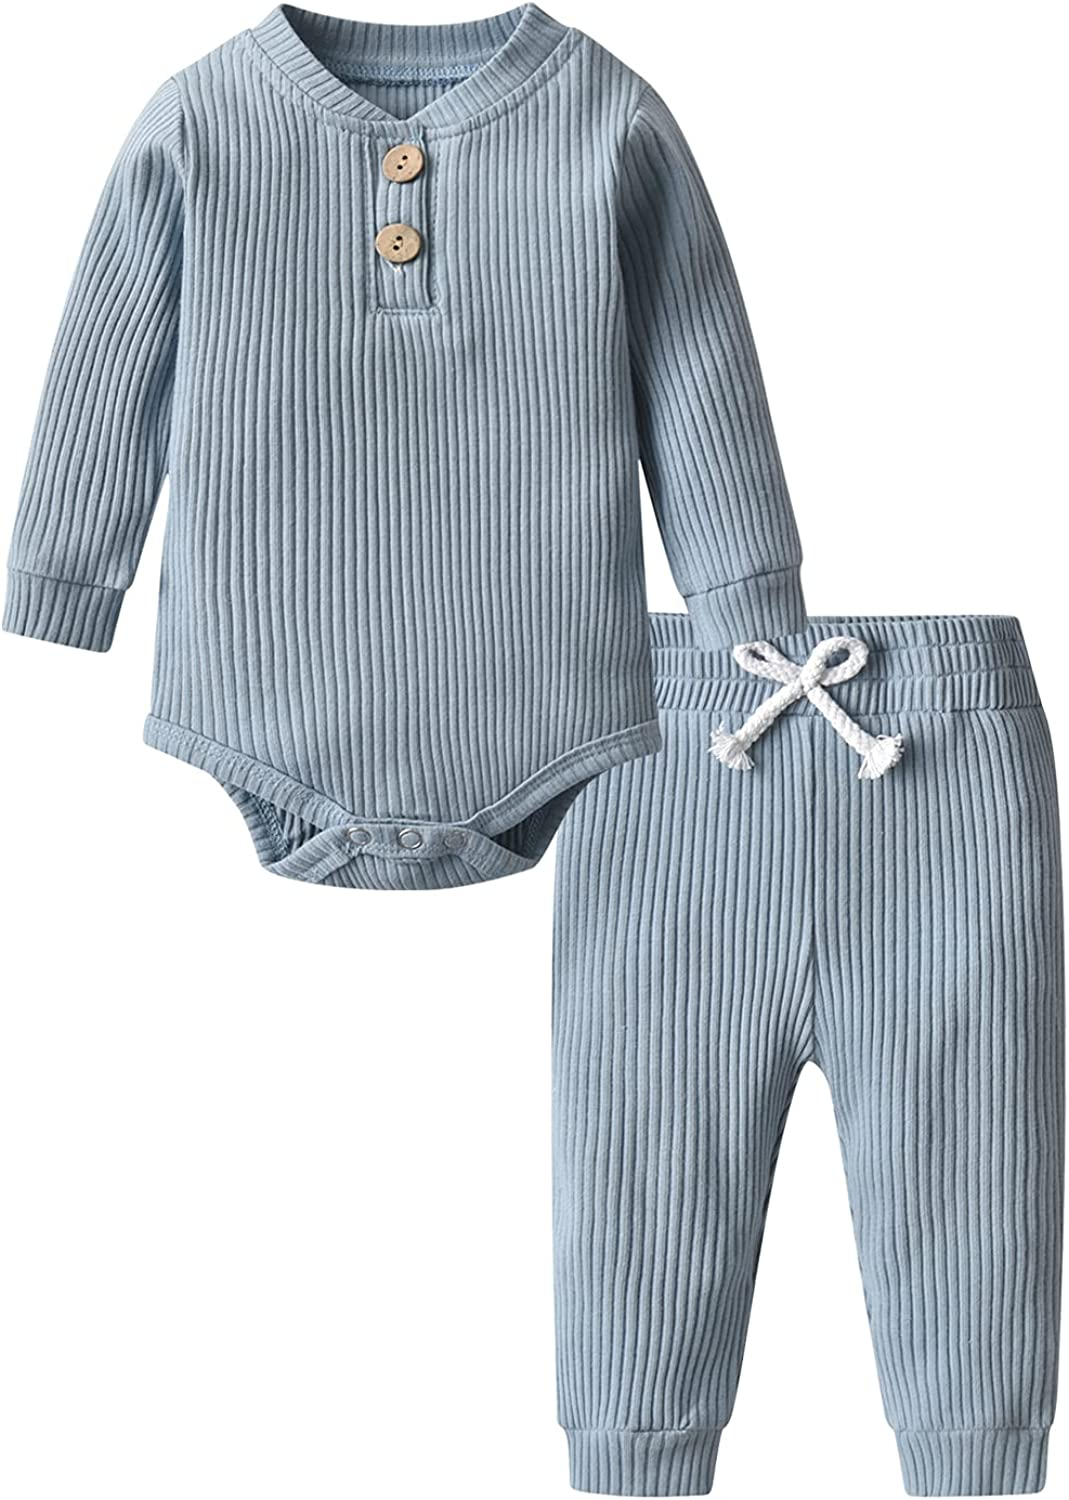 Newborn Baby Boy Girl Clothes Ribbed Cotton Long Sleeve Romper and Pants Outfits Set